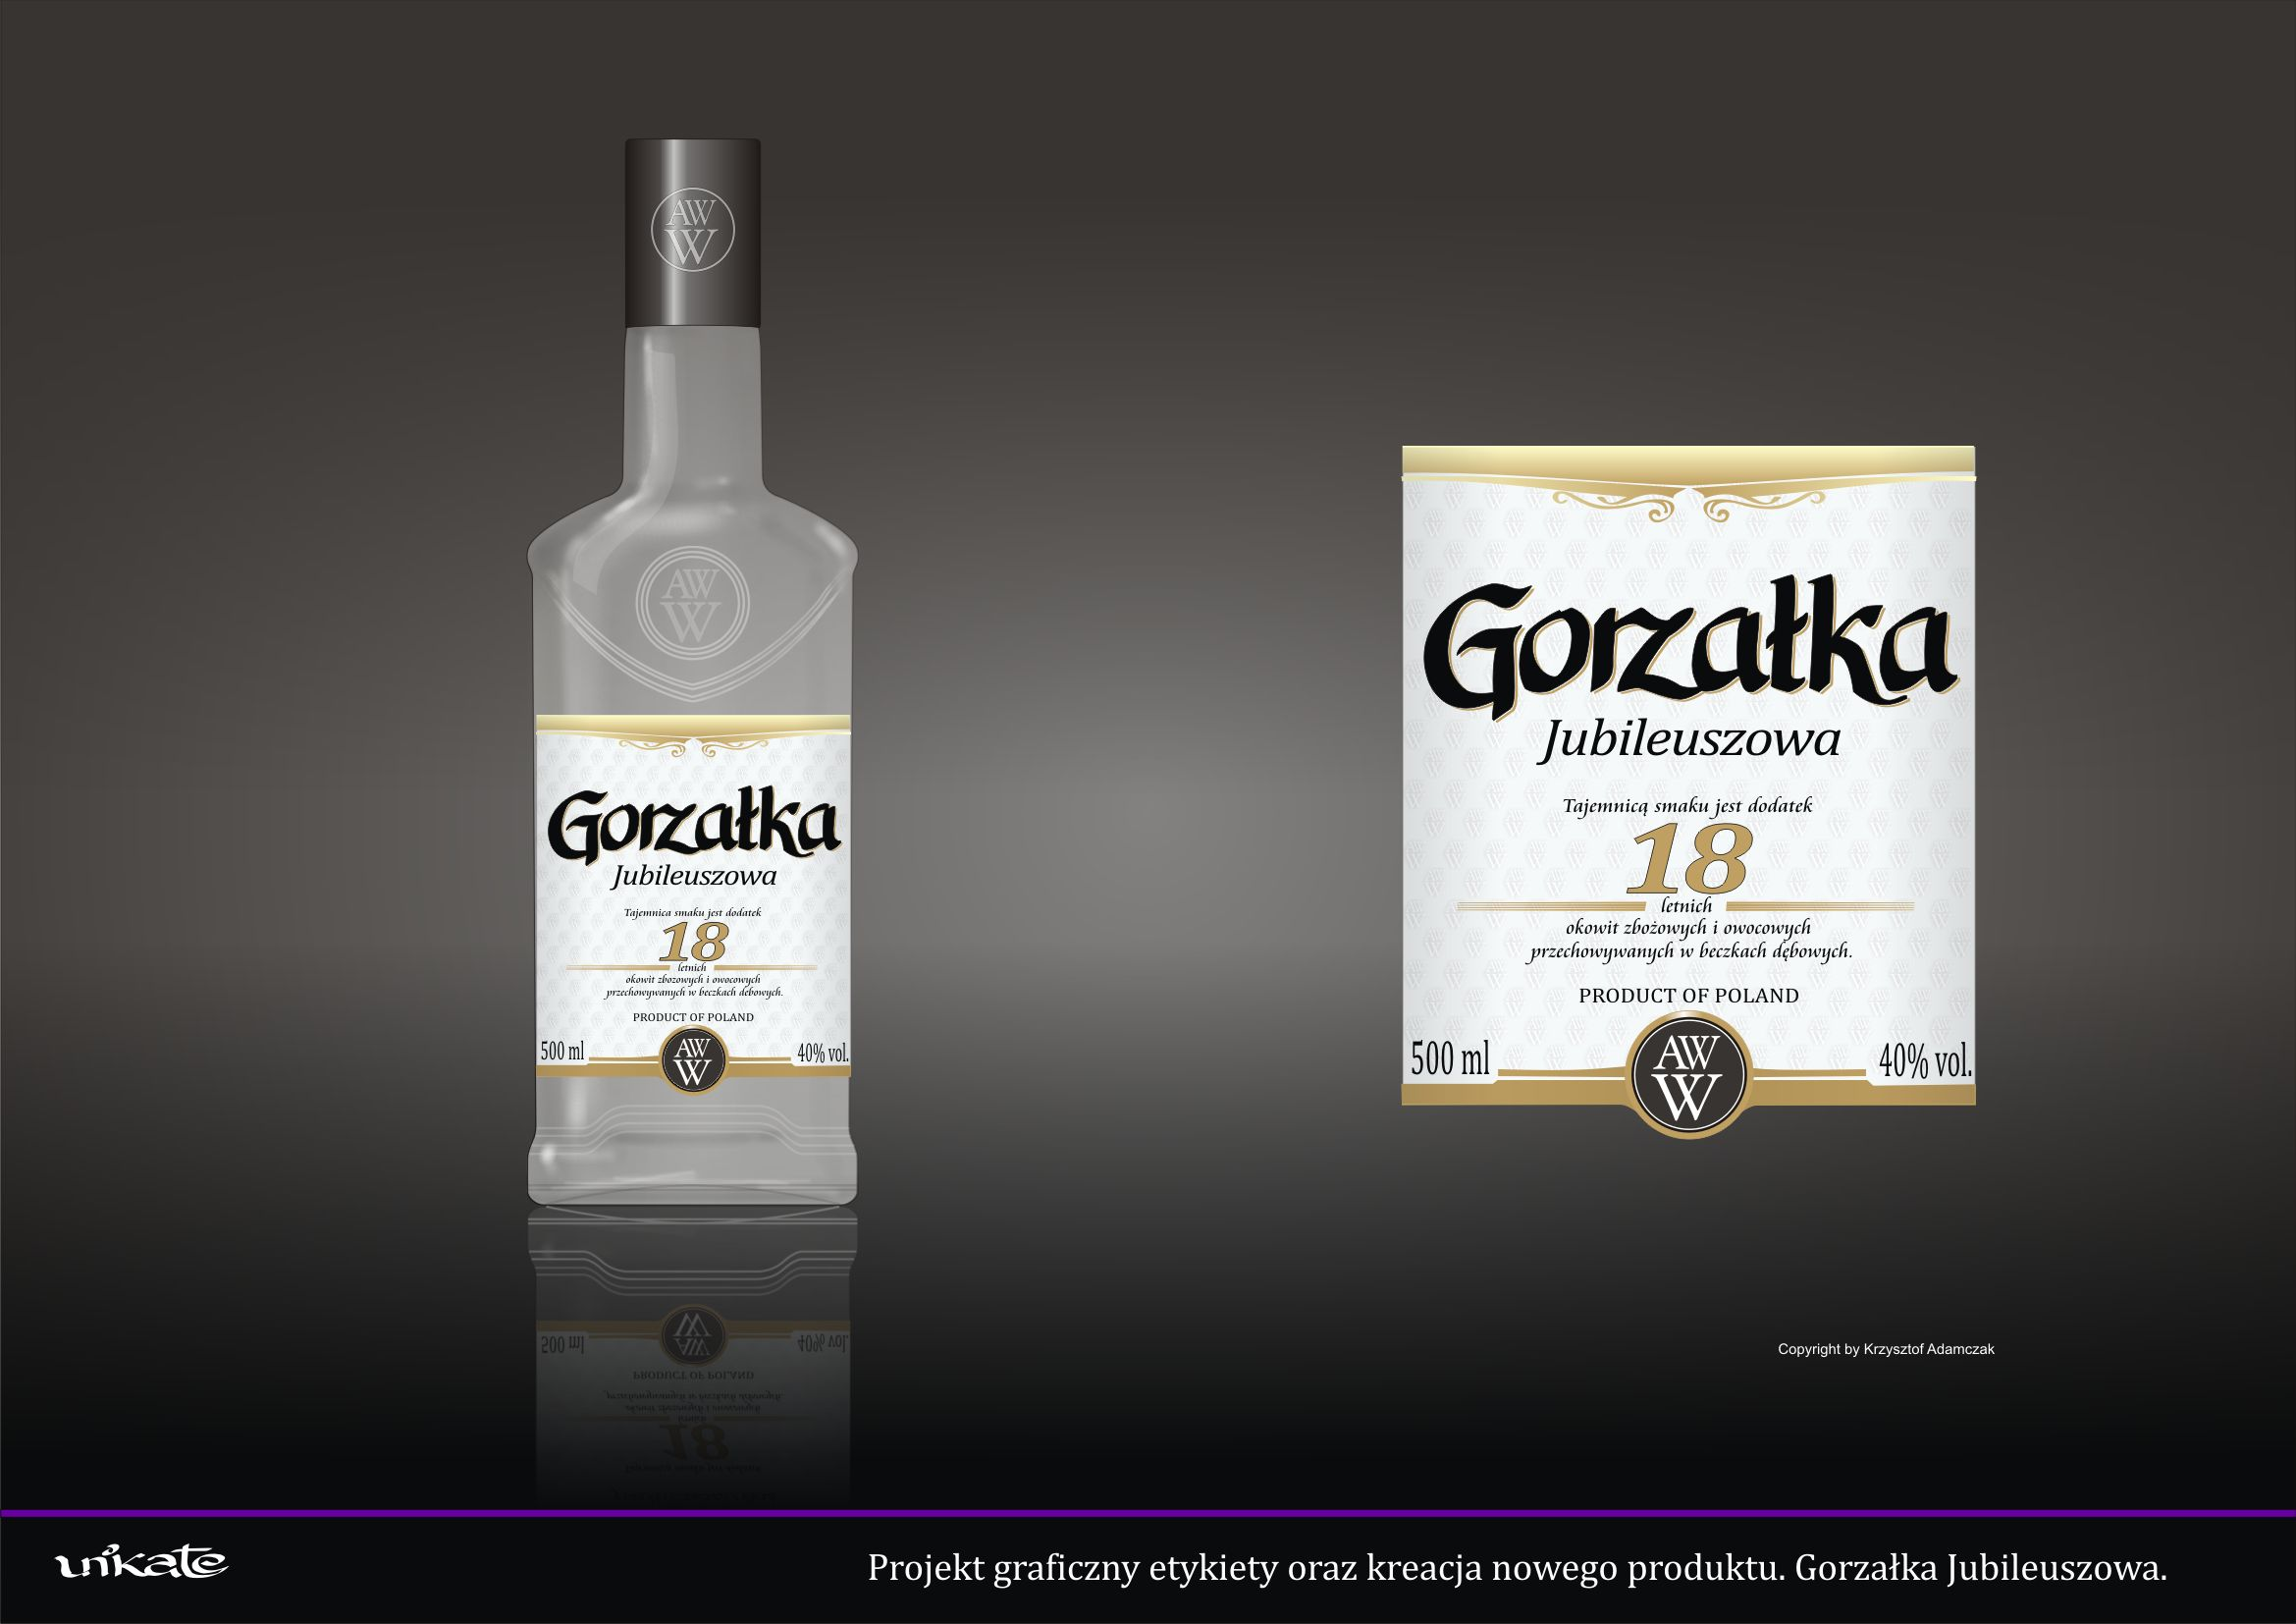 Design_Labels_Aww_Gorzalka_01